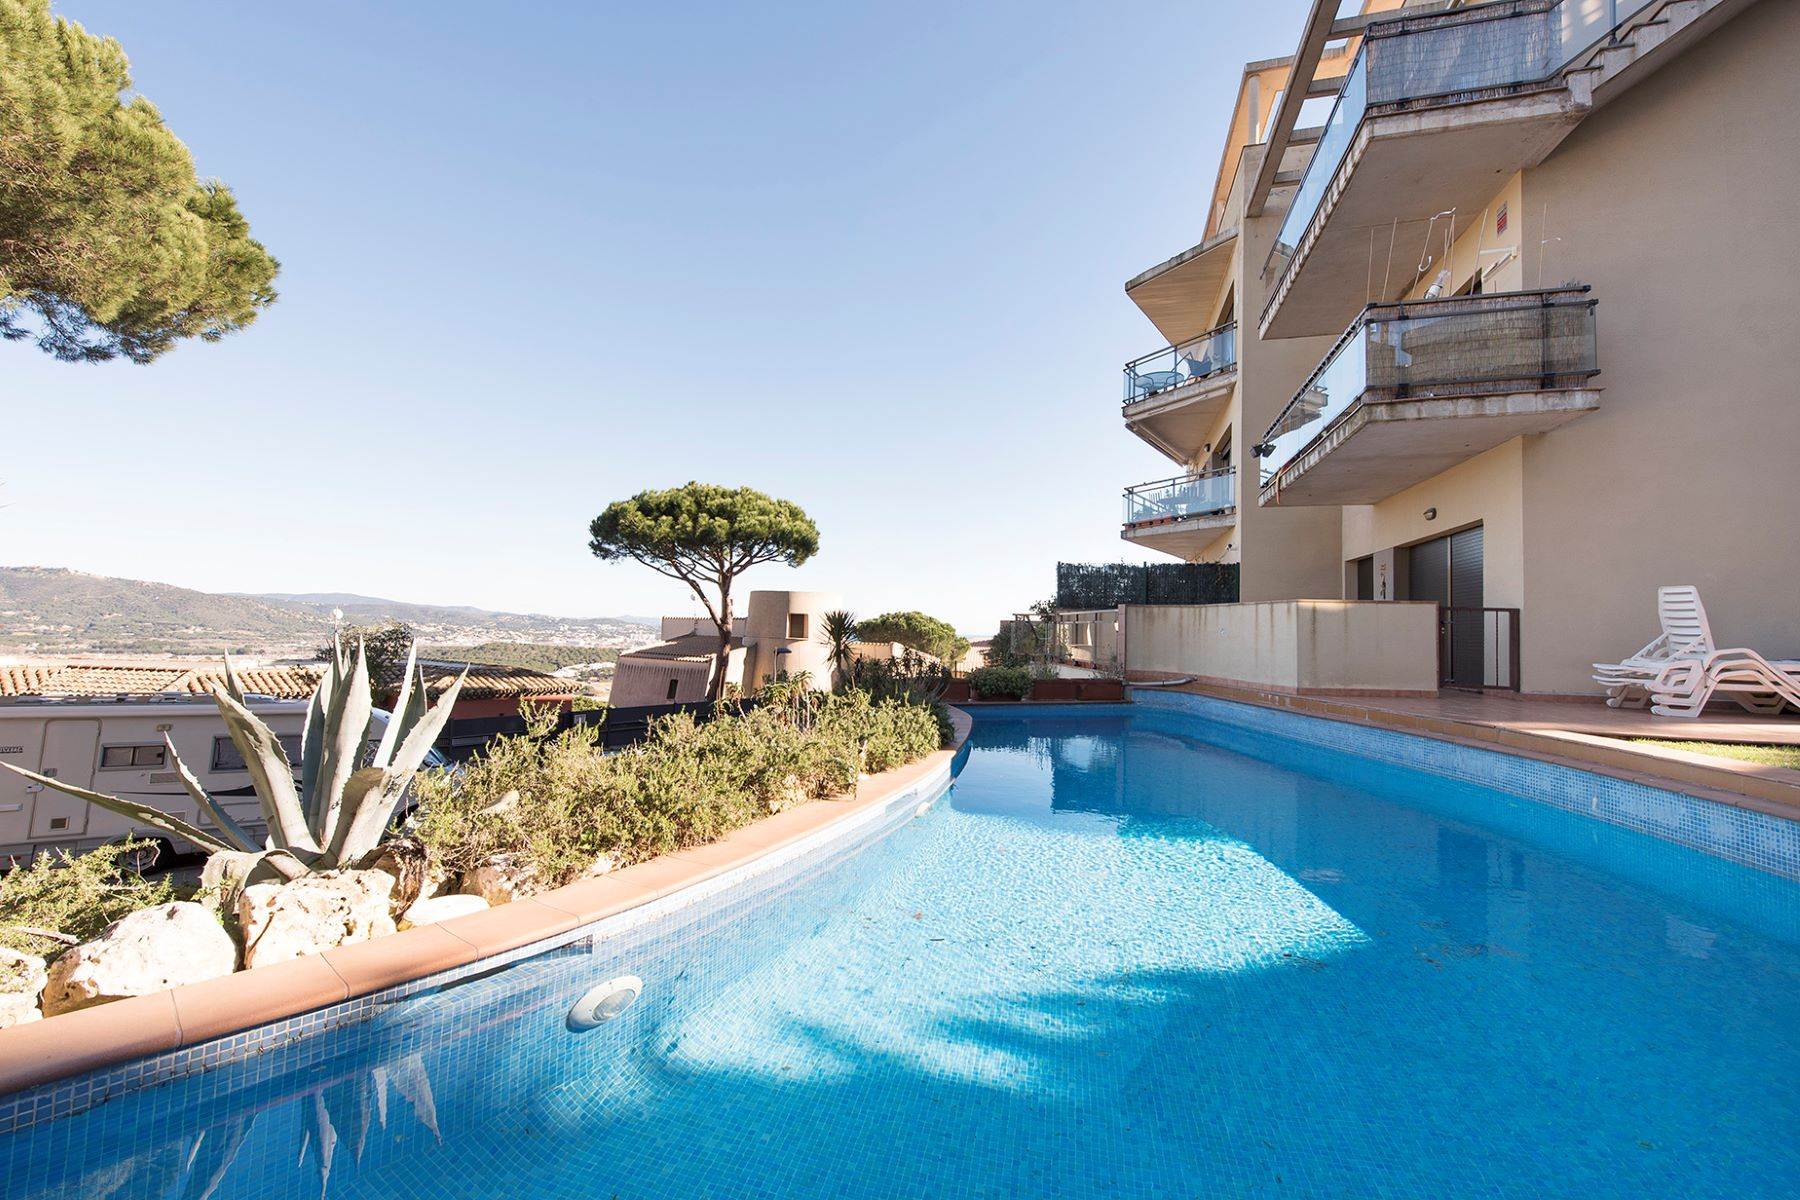 Appartement pour l Vente à Apartment in quiet area Sant Feliu De Guixols, Costa Brava, 17220 Espagne